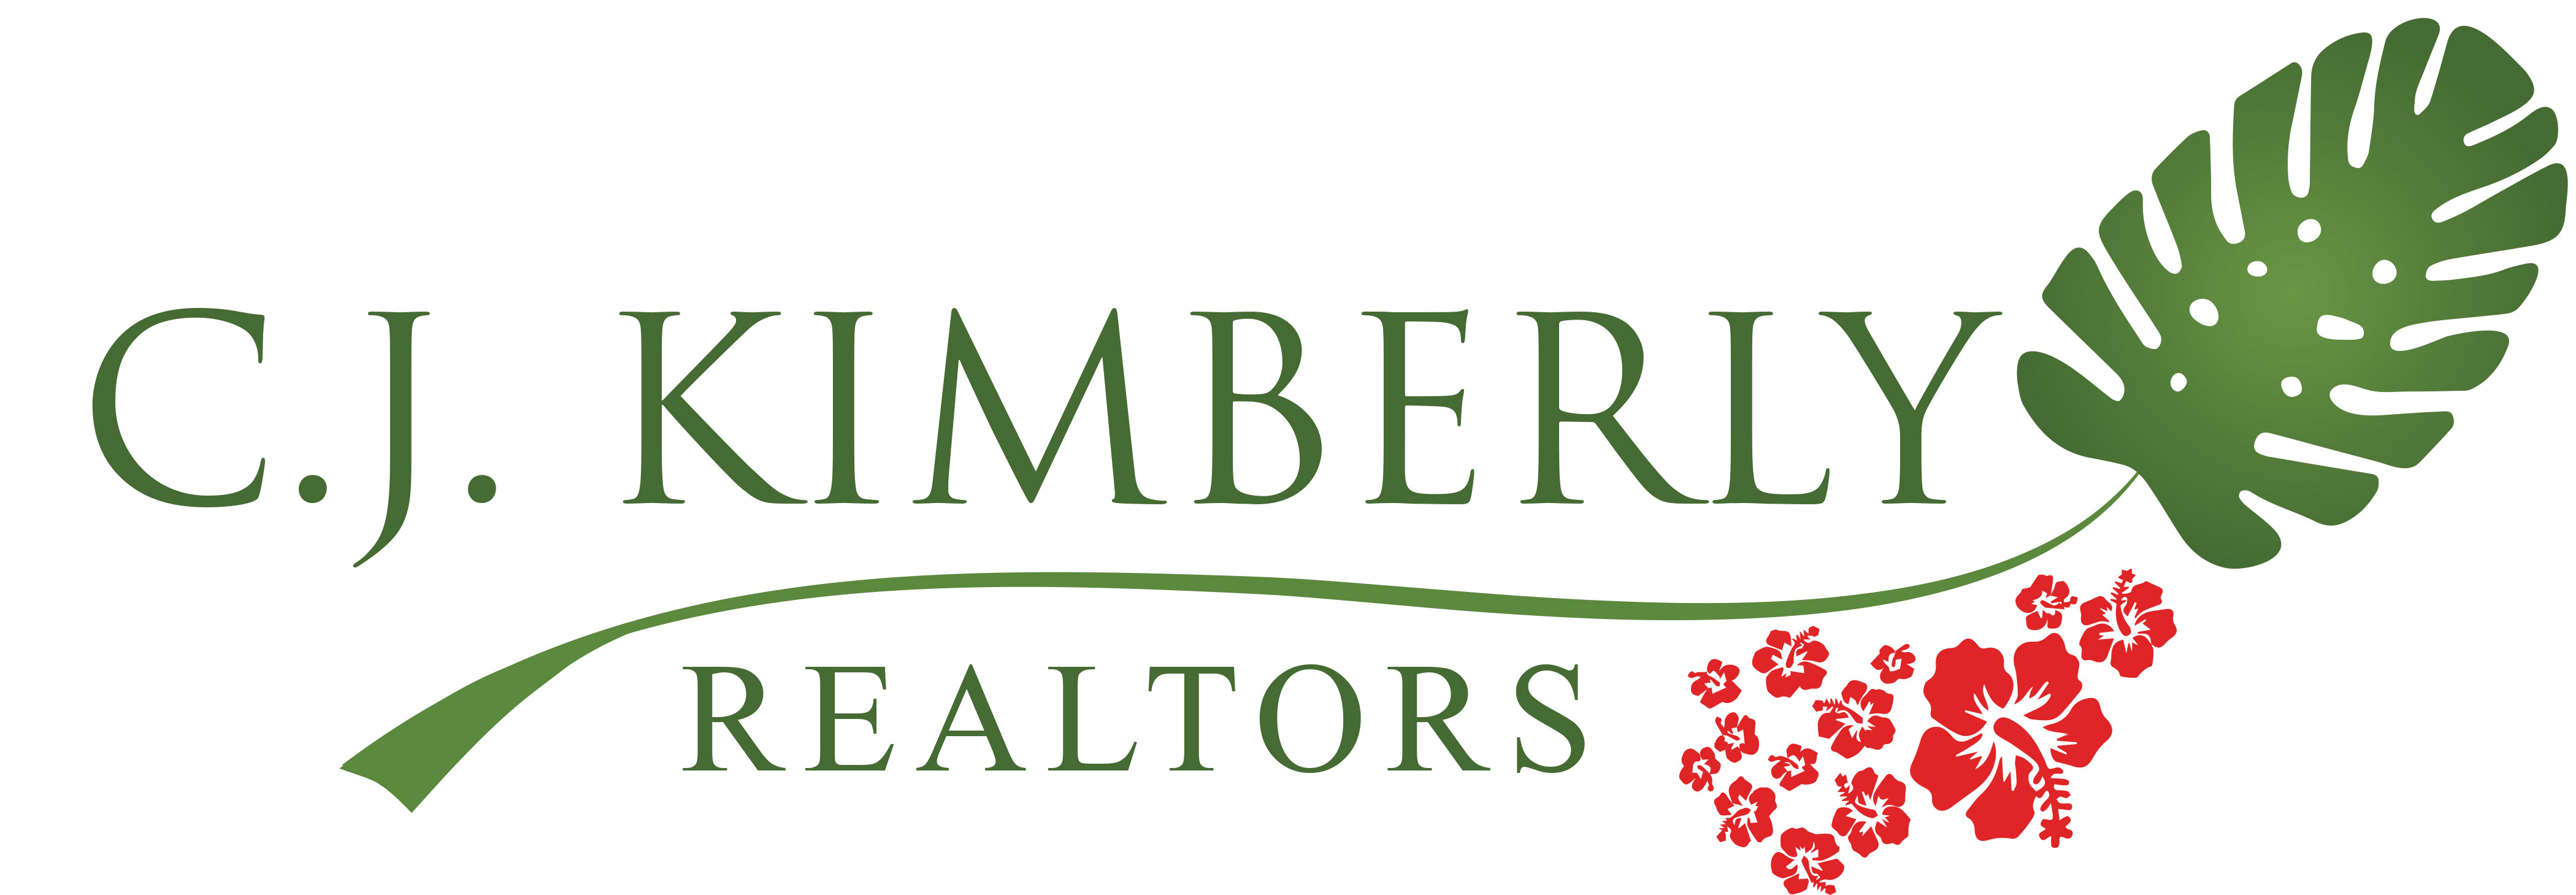 C.J. Kimberly Realtors | Kona, Hawaii Real Estate